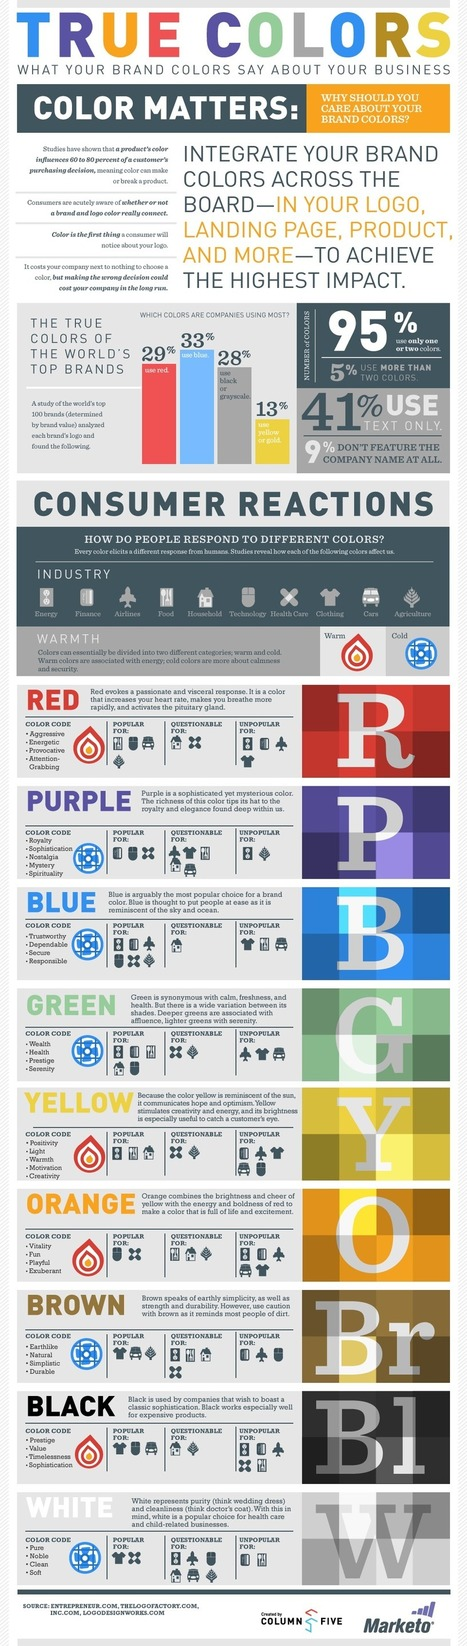 What Your Brand Colors Say About Your Business [Infographic] | Internet Marketing method | Scoop.it